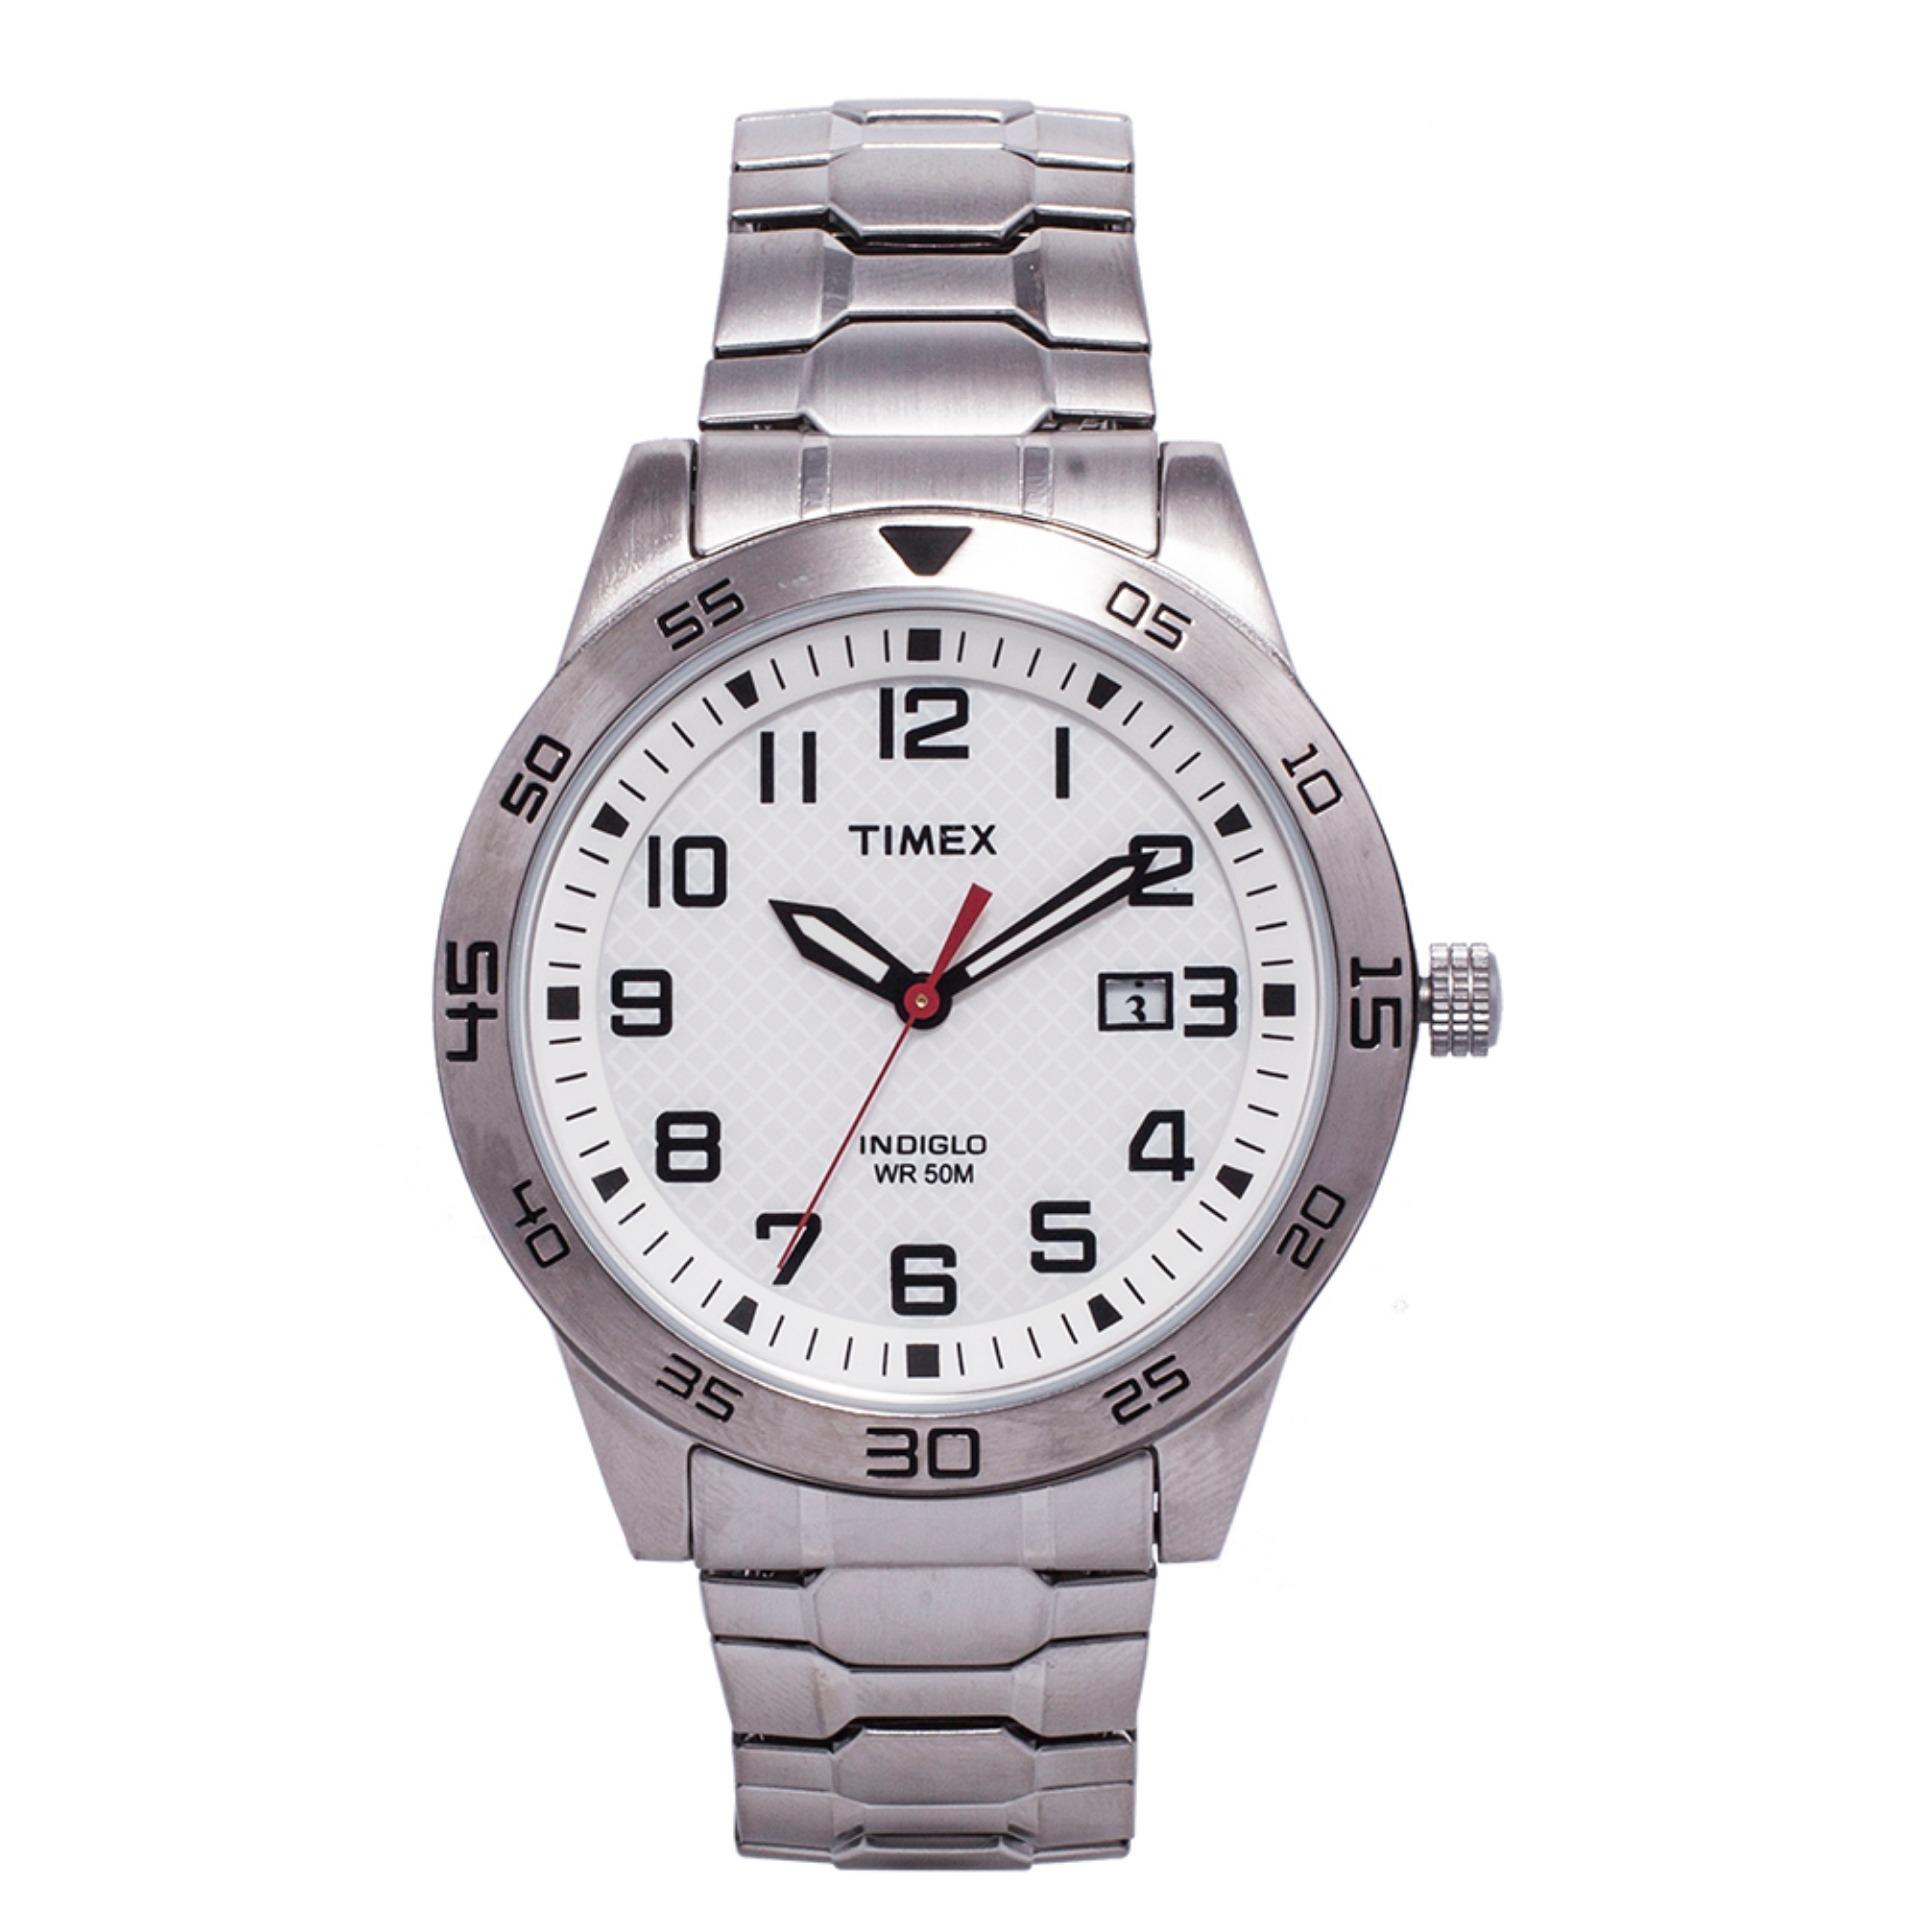 Timex Philippines Price List Watches For Men Women Jam Tangan Analog Rhombus Dial Plate Woman Black Mens Classic Silver Stainless Steel Watch Tw2p61400